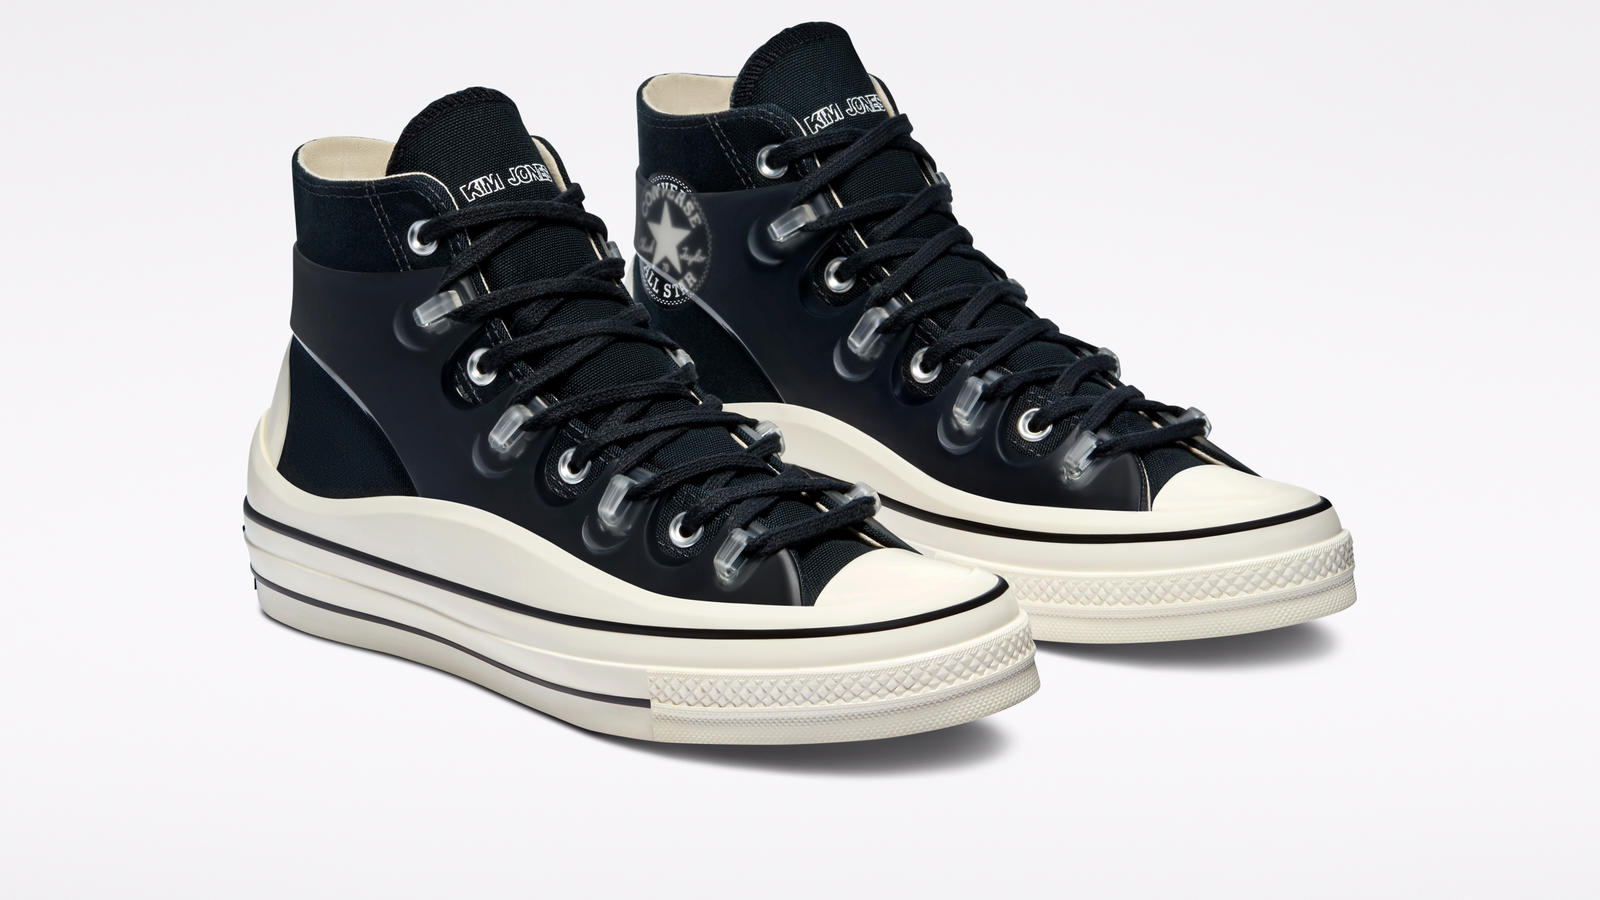 Converse x Kim Jones Chuck 70 and Apparel  0